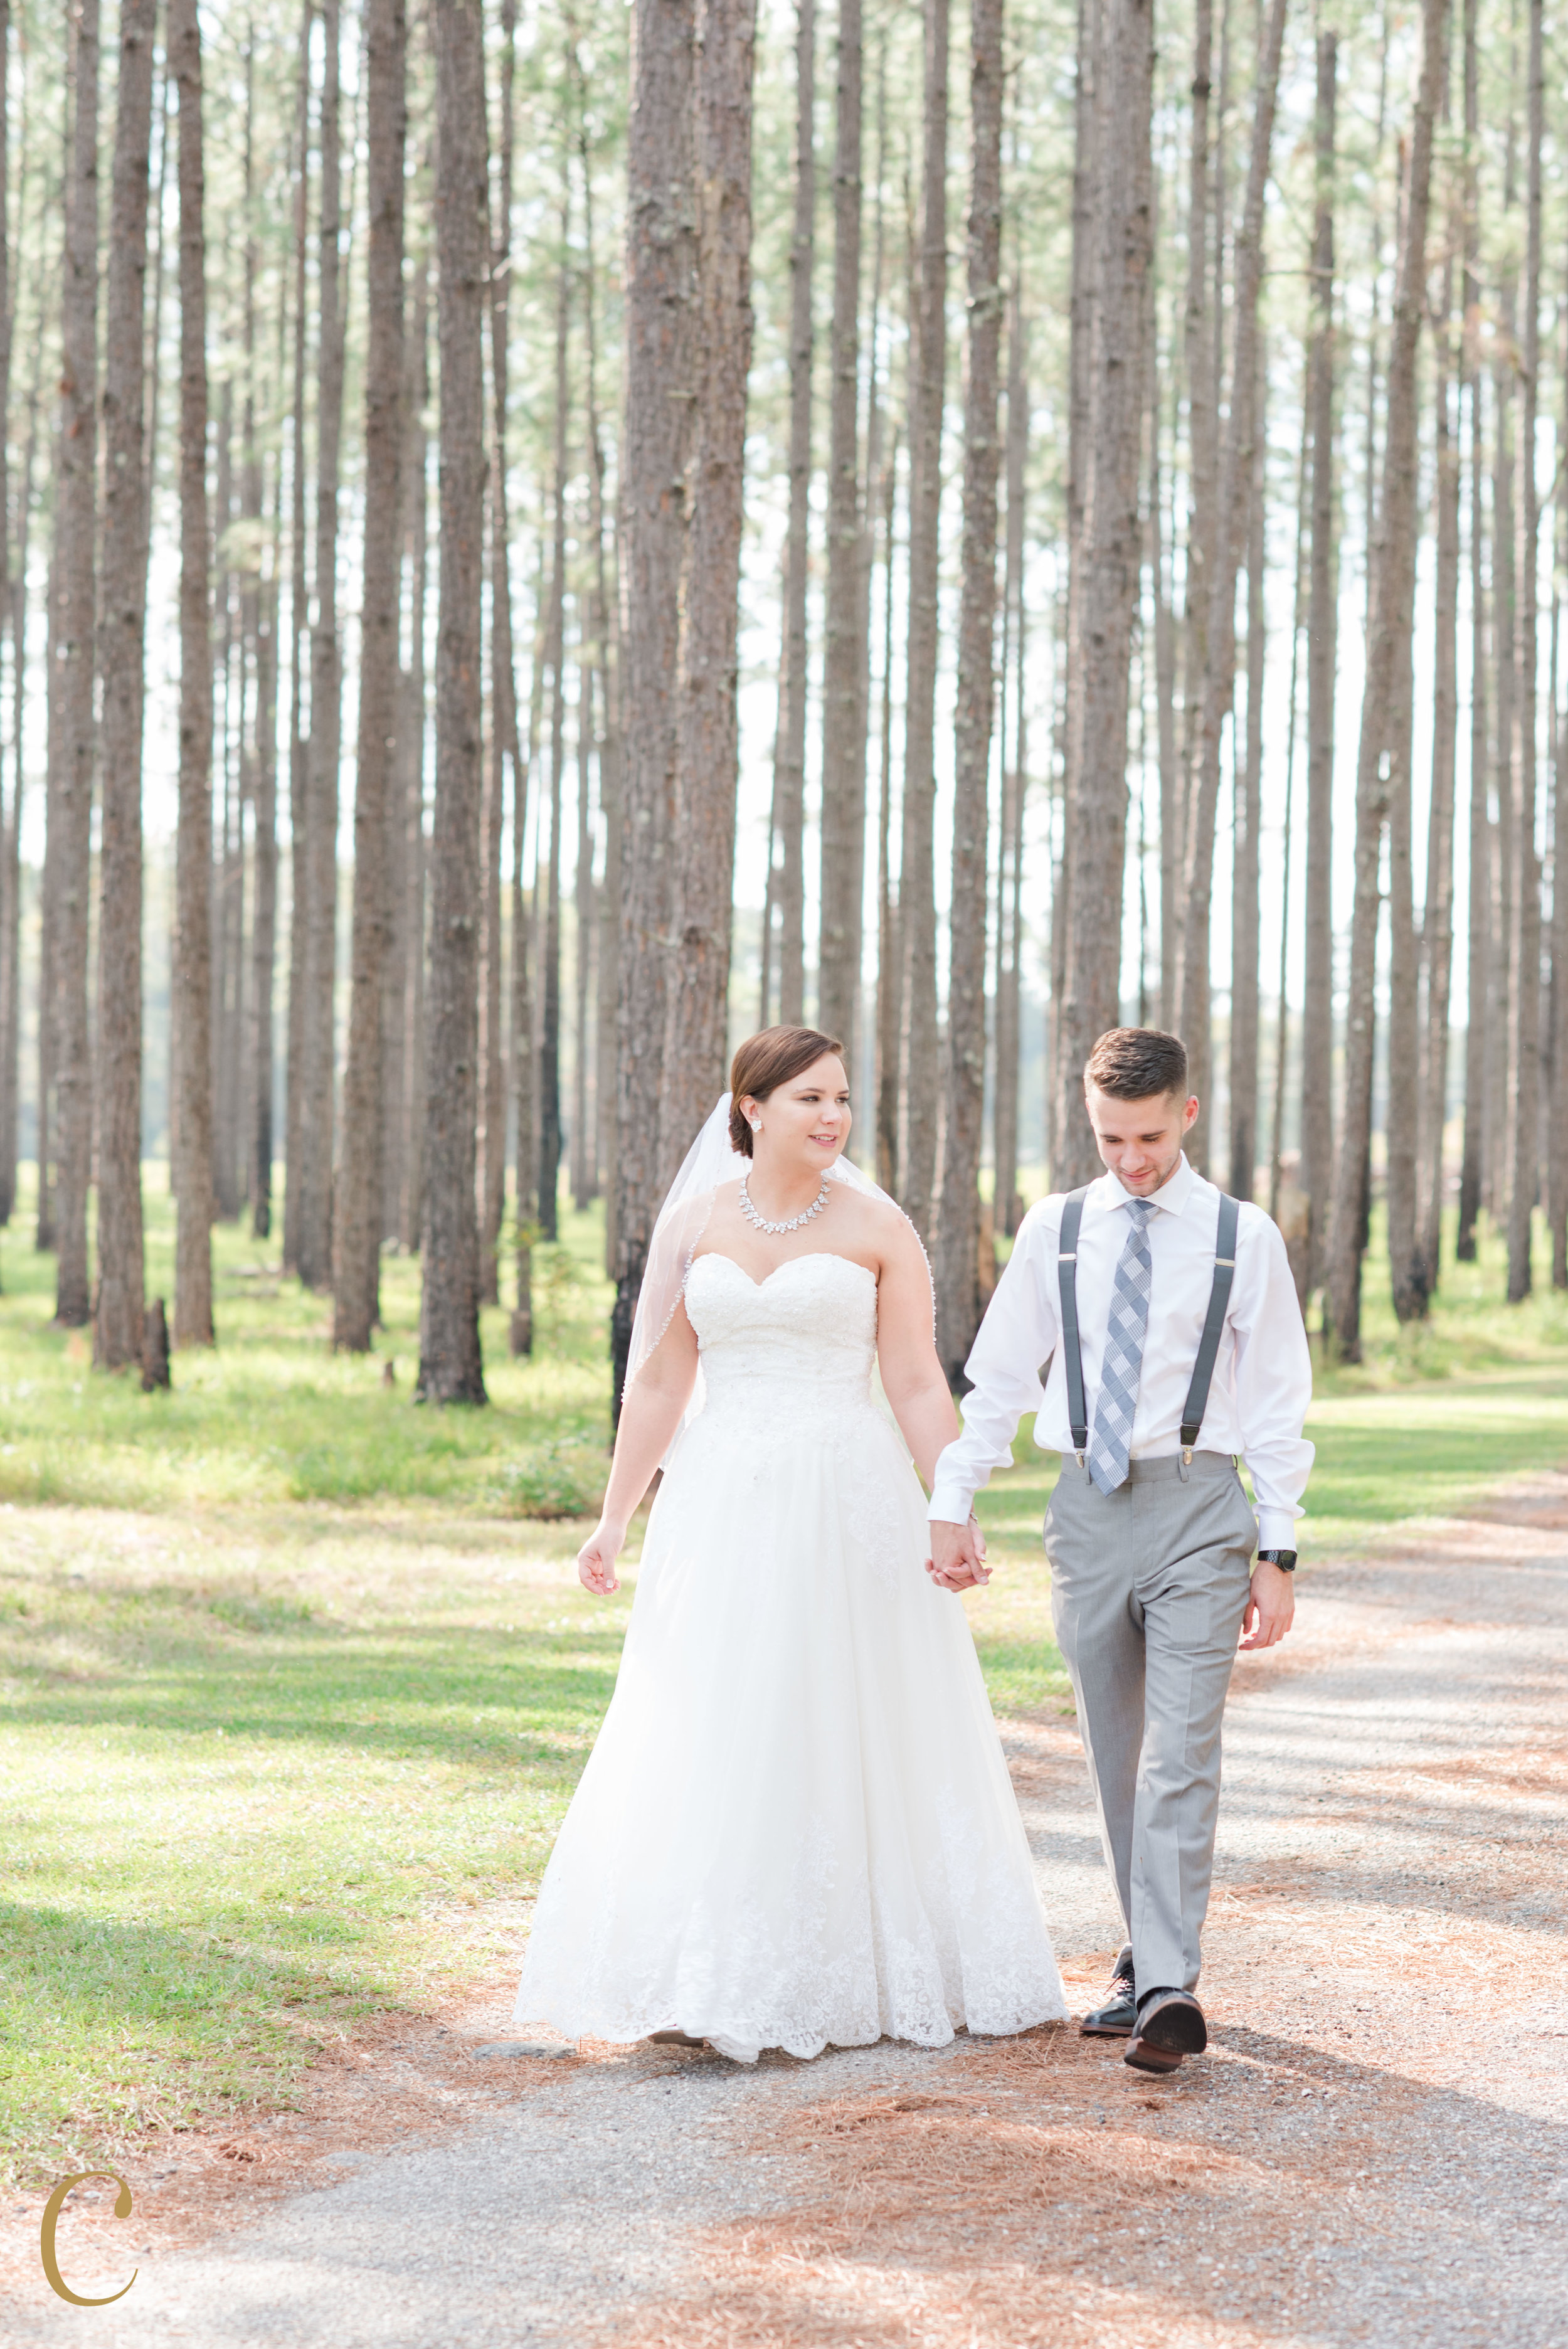 ©christineaustinphotography_jarred_hannah_wedding-15.jpg